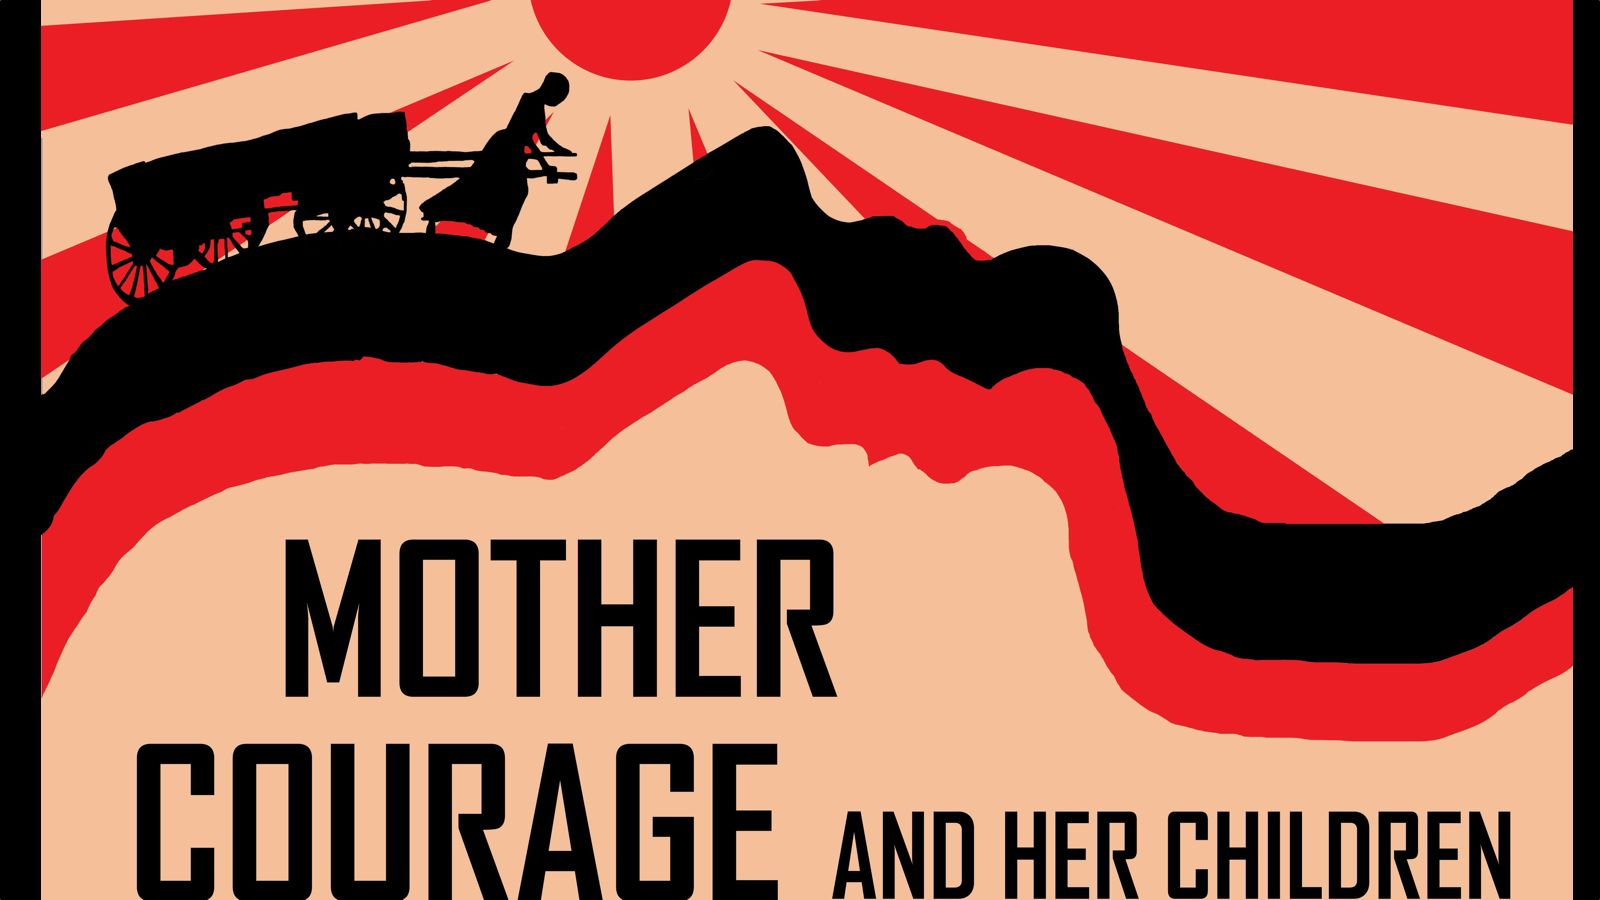 Mother Courage graphic